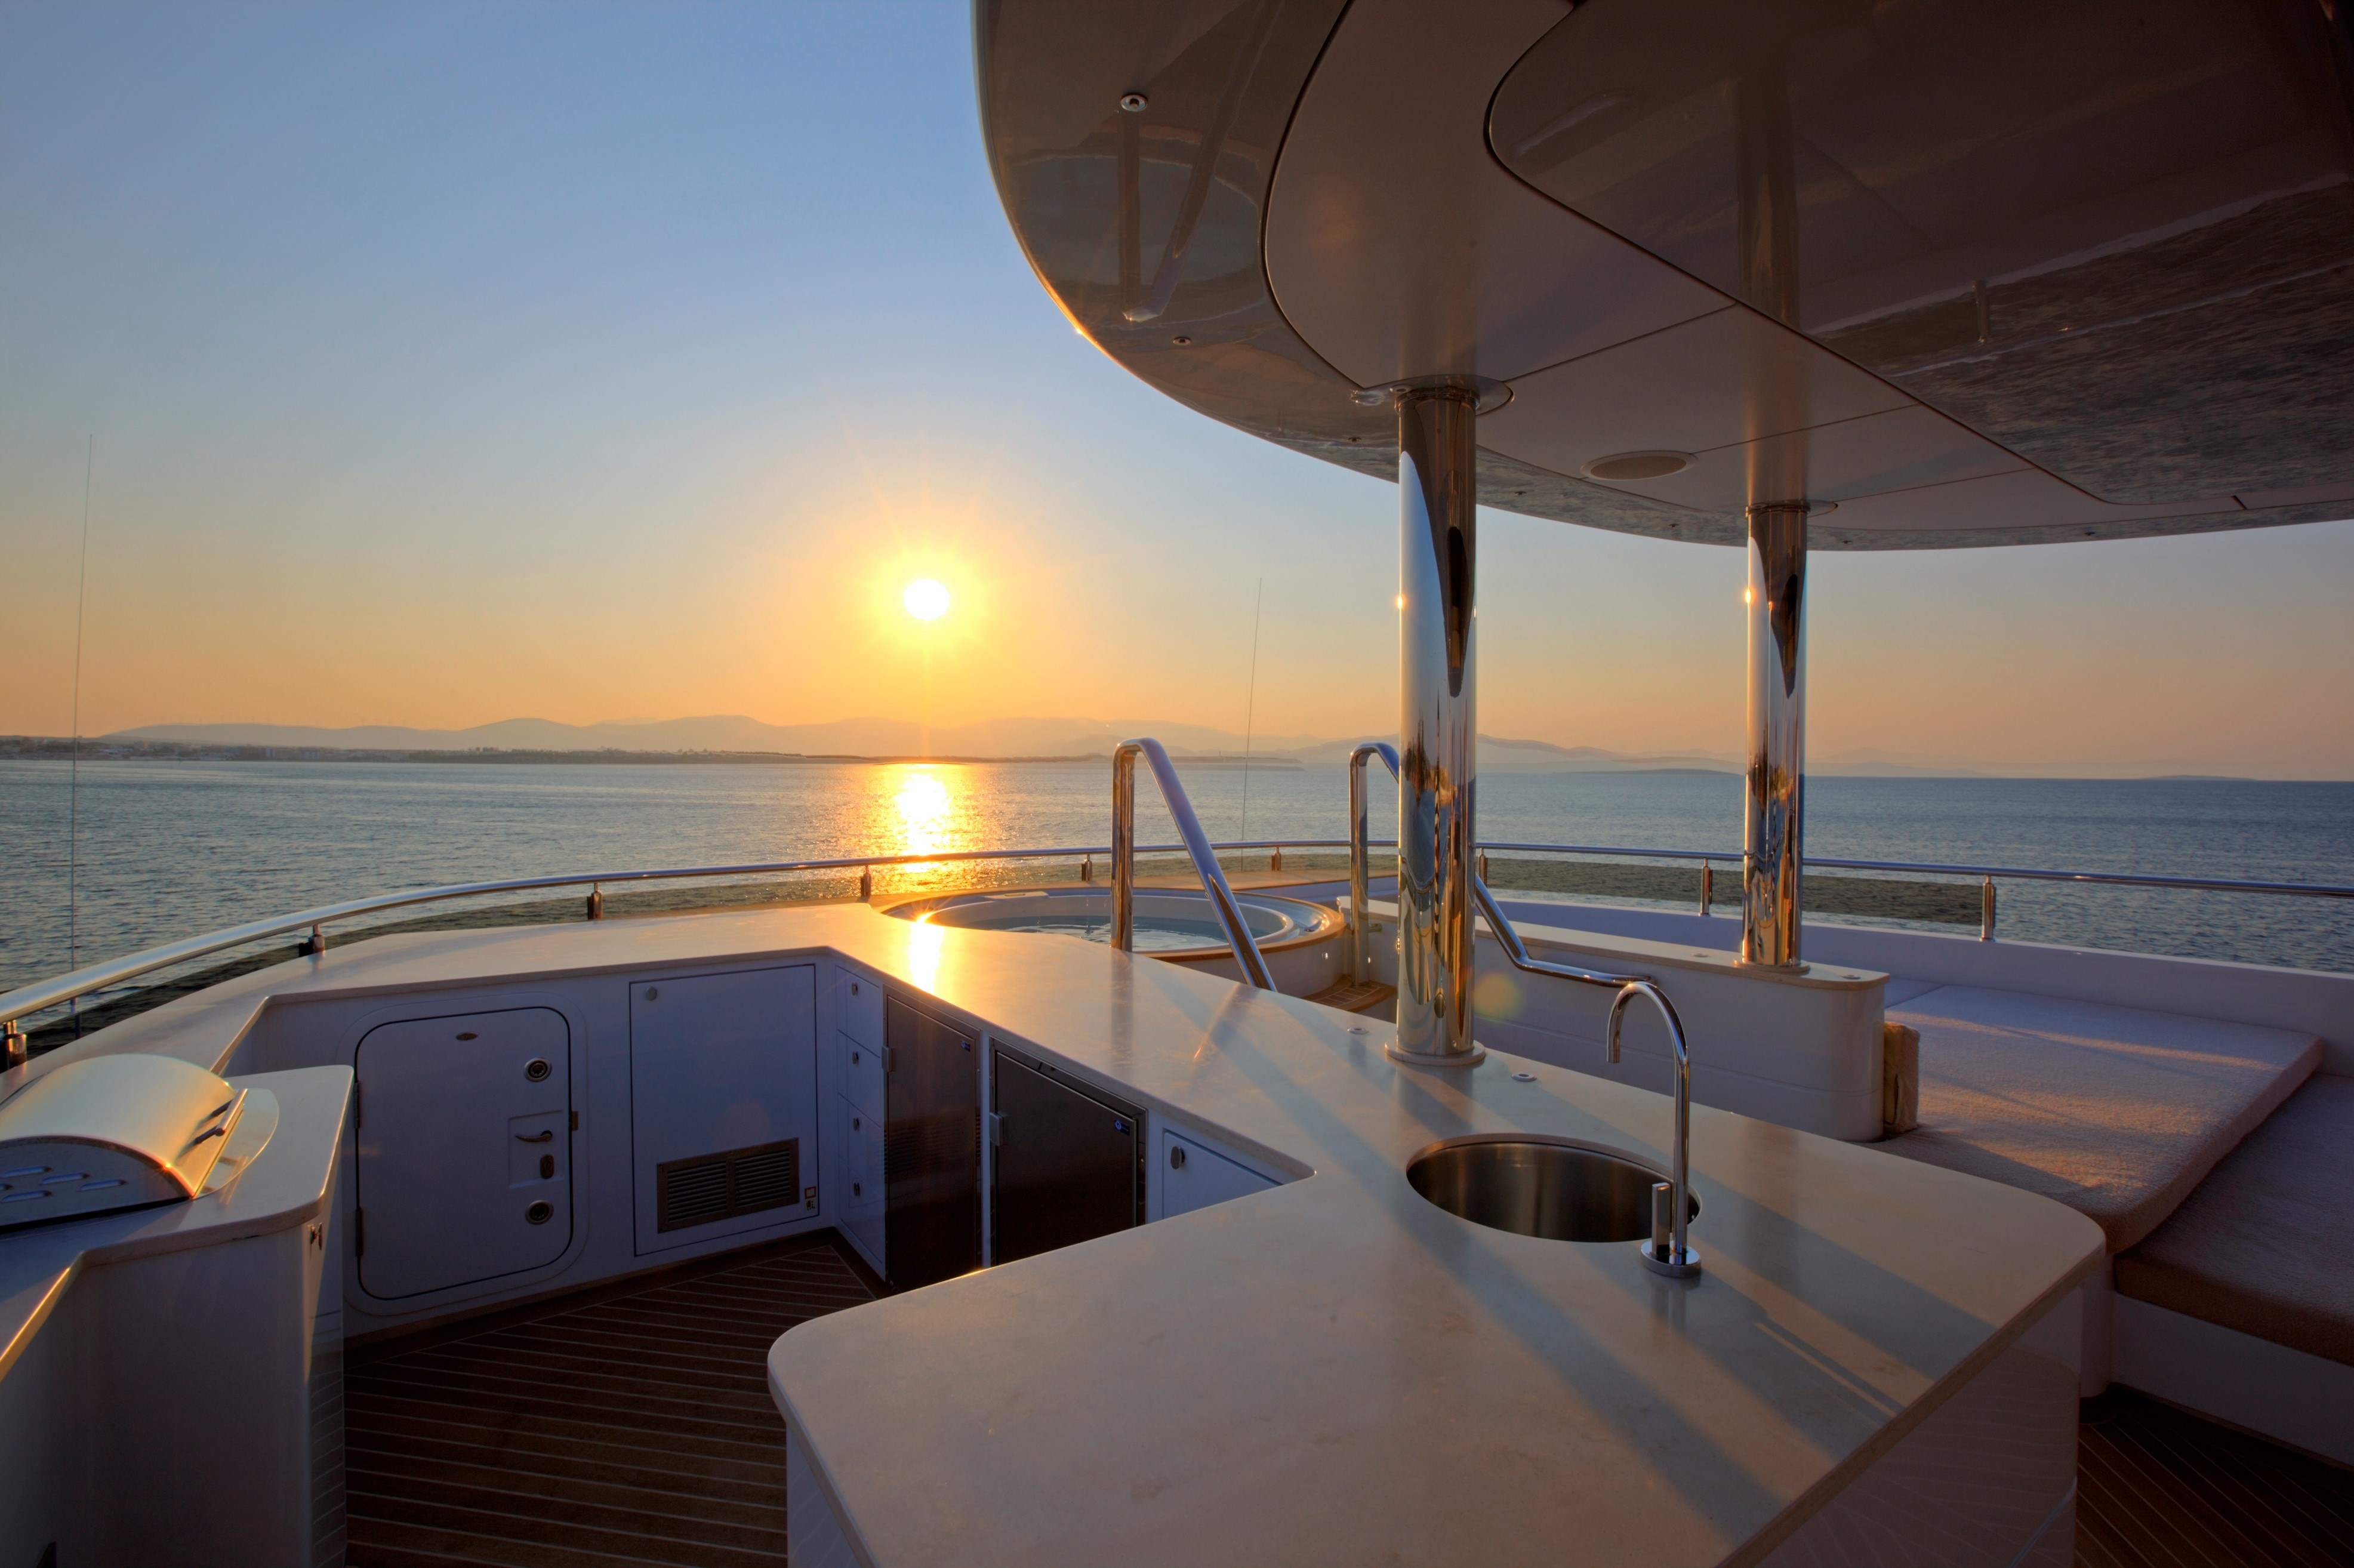 Yacht QUARANTA By Curvelle - BBQ And Jacuzzi At Sunset